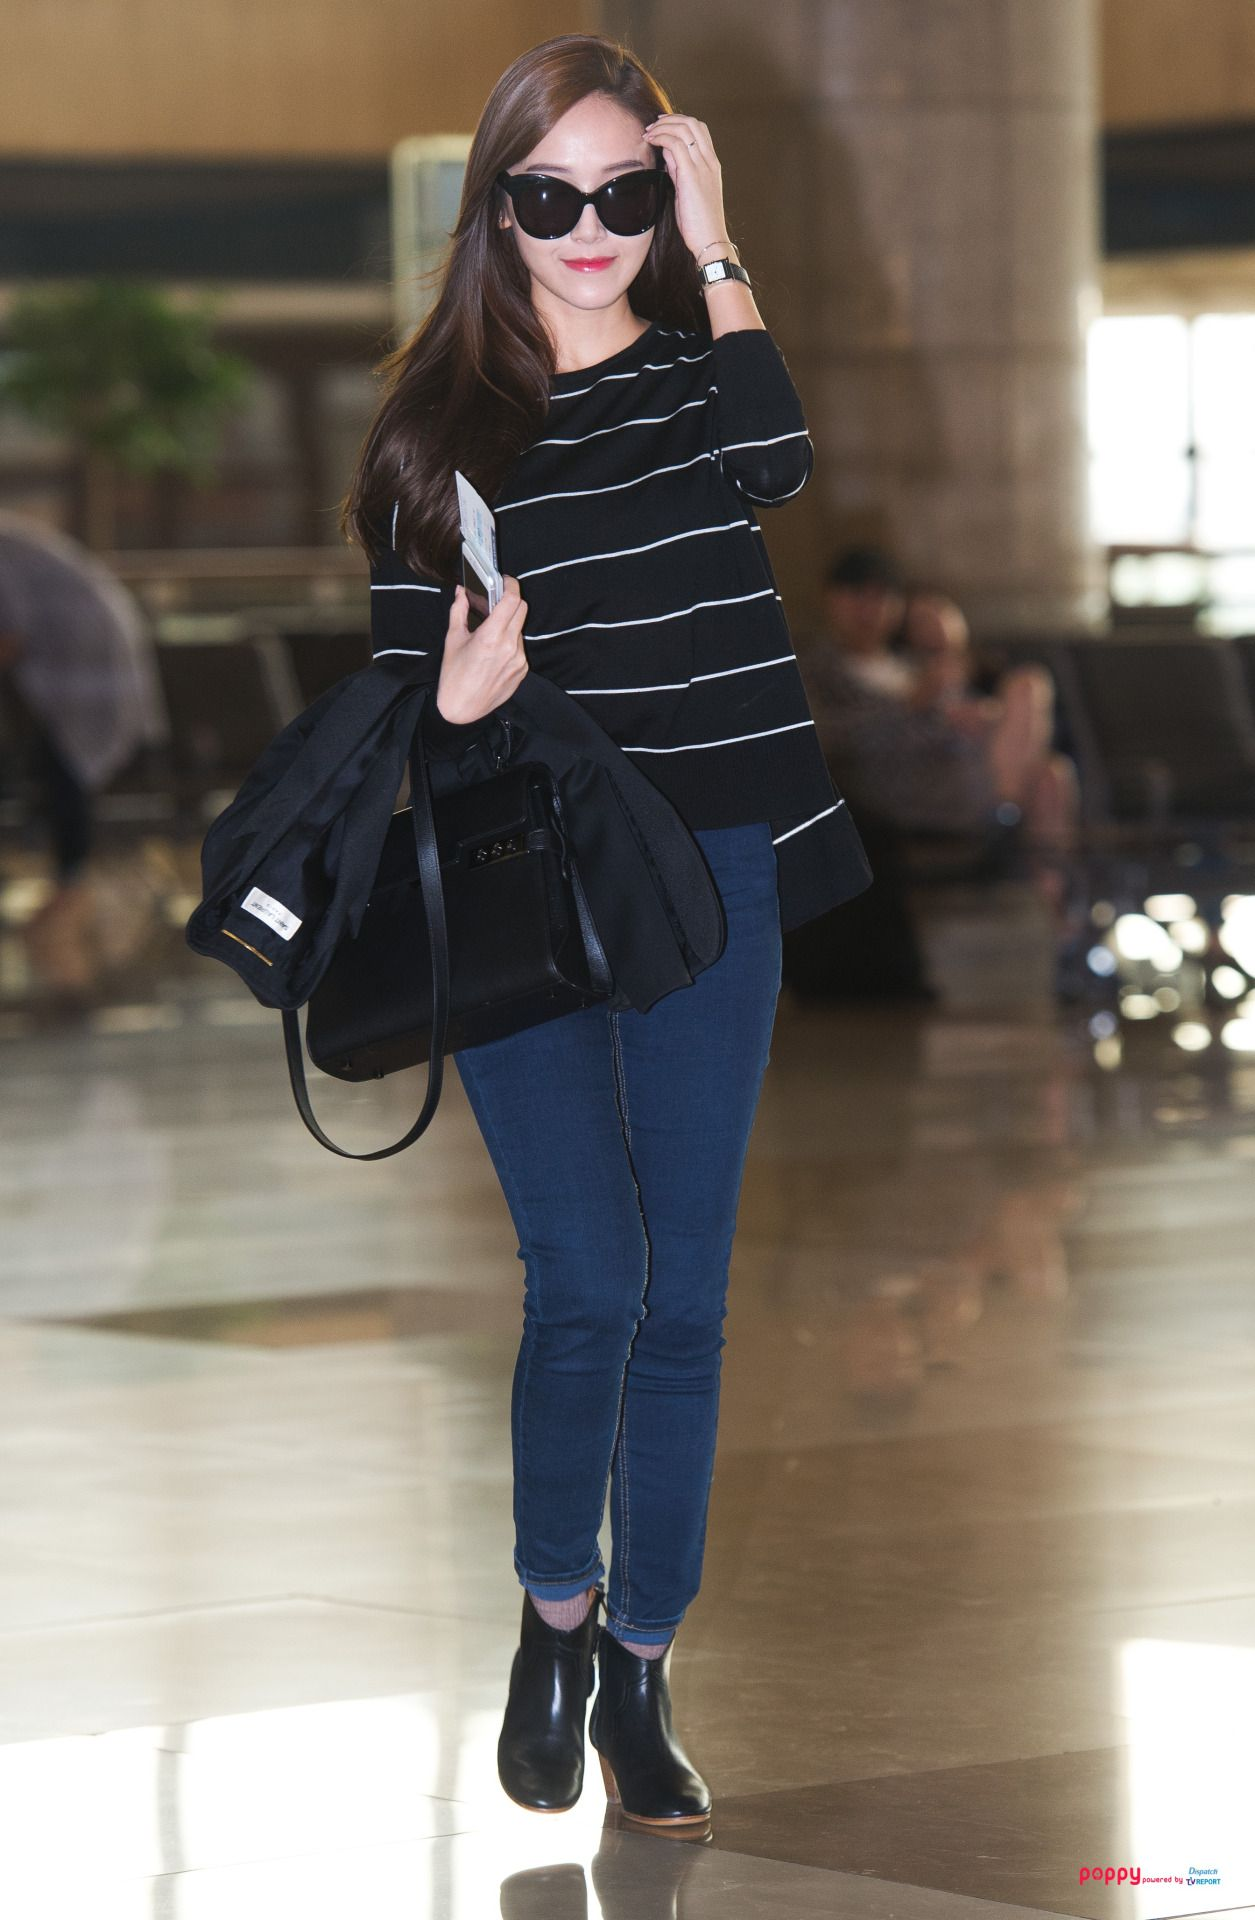 Jung Online Jessica S Airport Fashion Jessica Airport Fashion Jessica